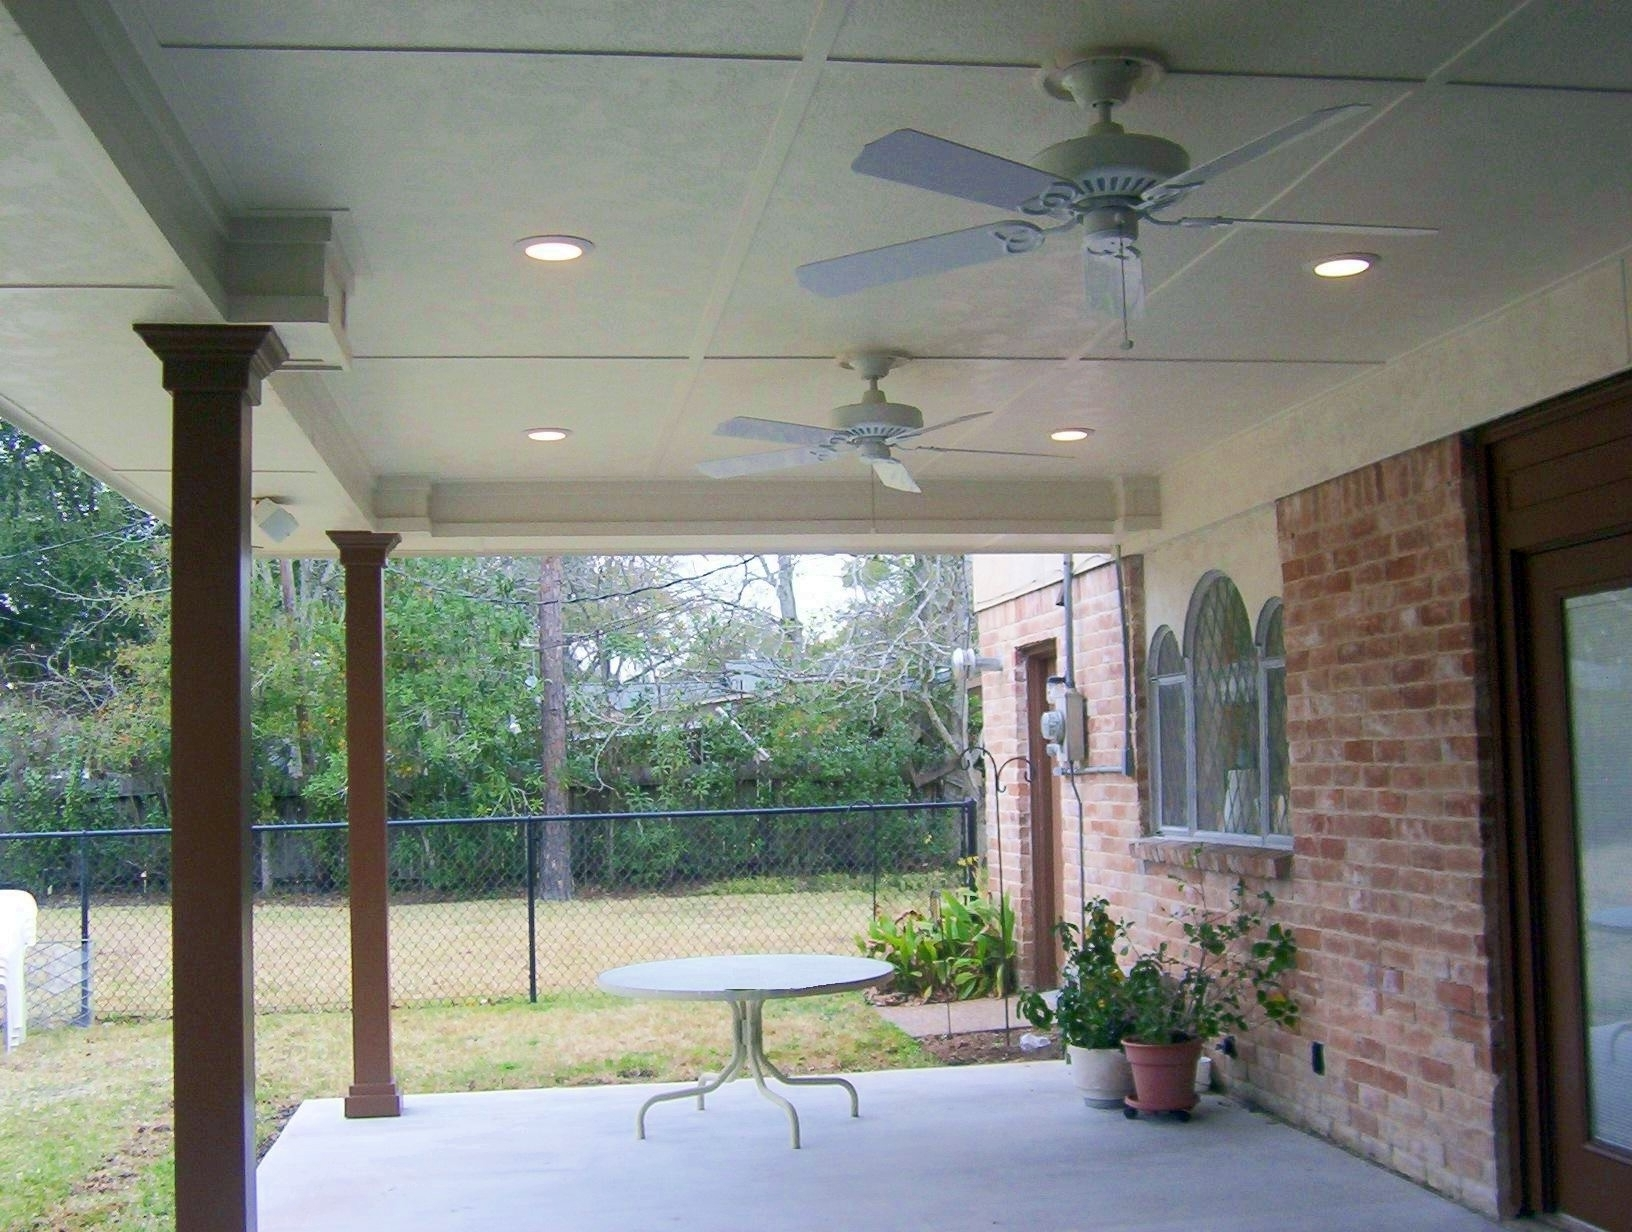 Fabulous Outdoor Patio Ceiling Fans Cool Outdoor Ceiling Fans Patio For Latest Outdoor Porch Ceiling Fans With Lights (View 11 of 20)